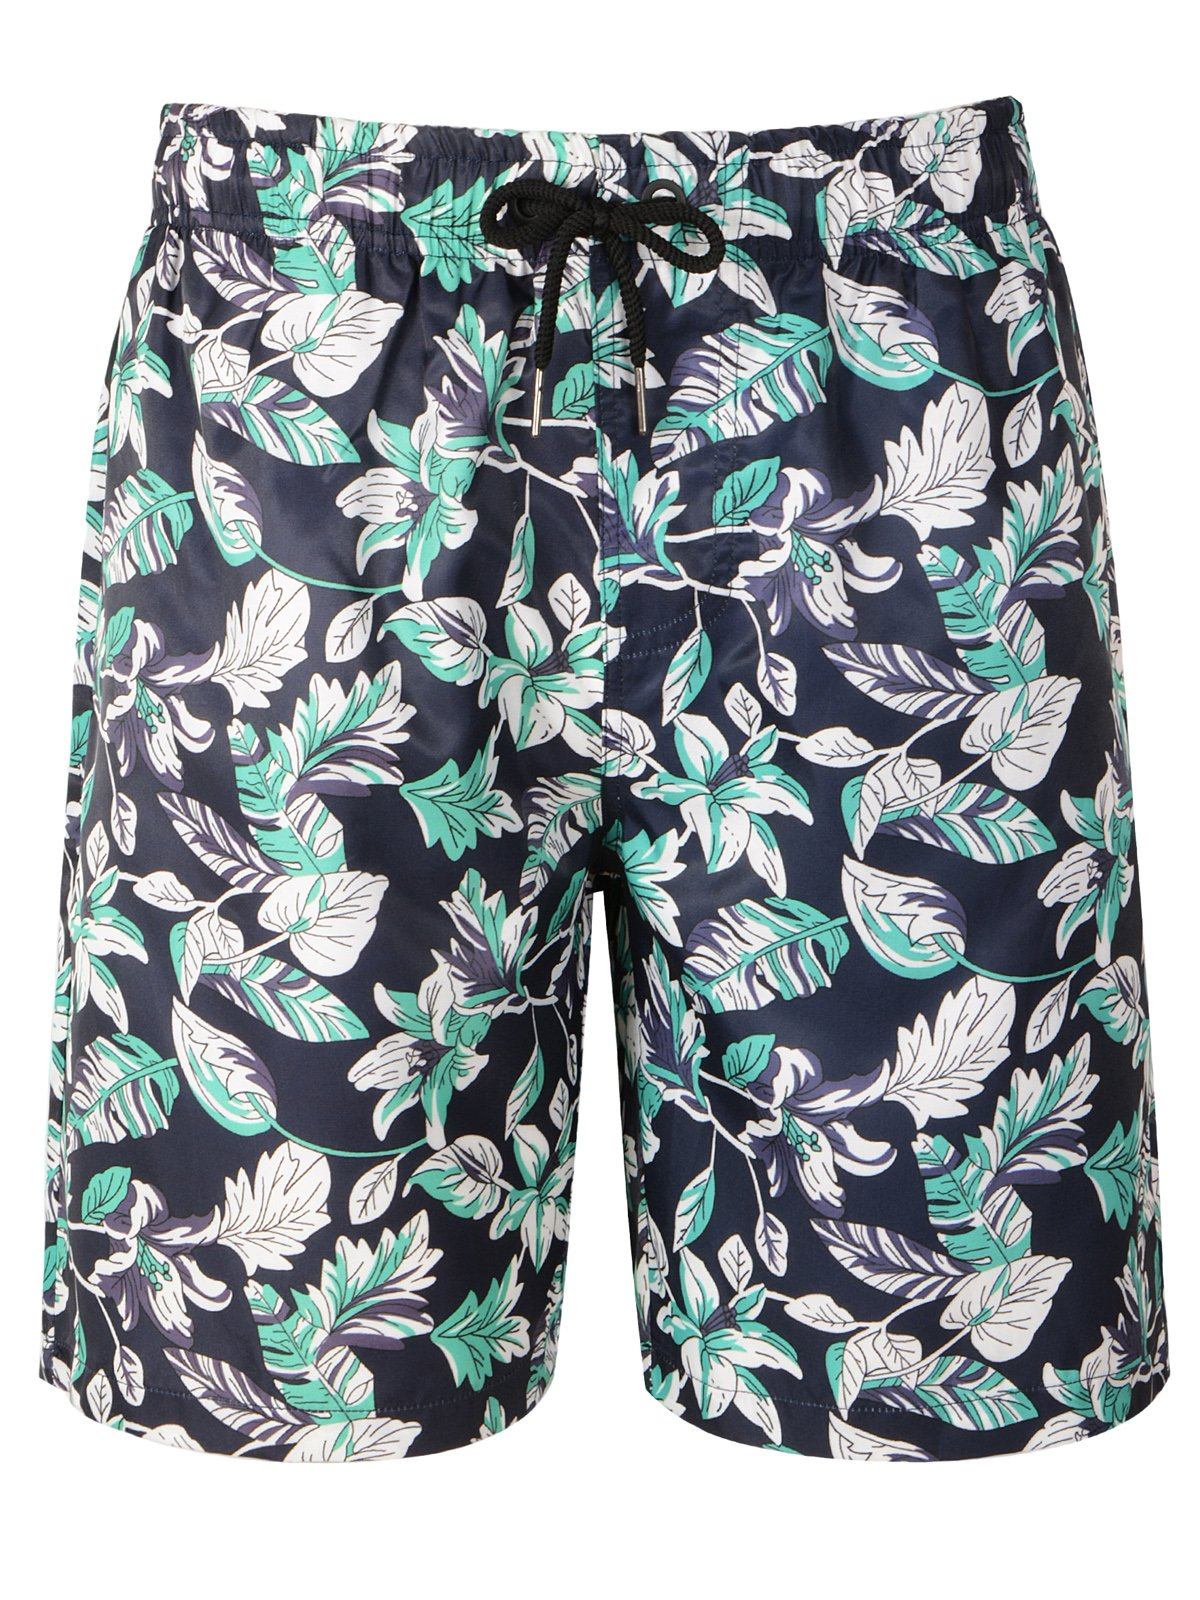 Hopioneer Men's Swim Trunks Quick Dry Board Shorts Tropical Leaves Printed with Mesh Lining